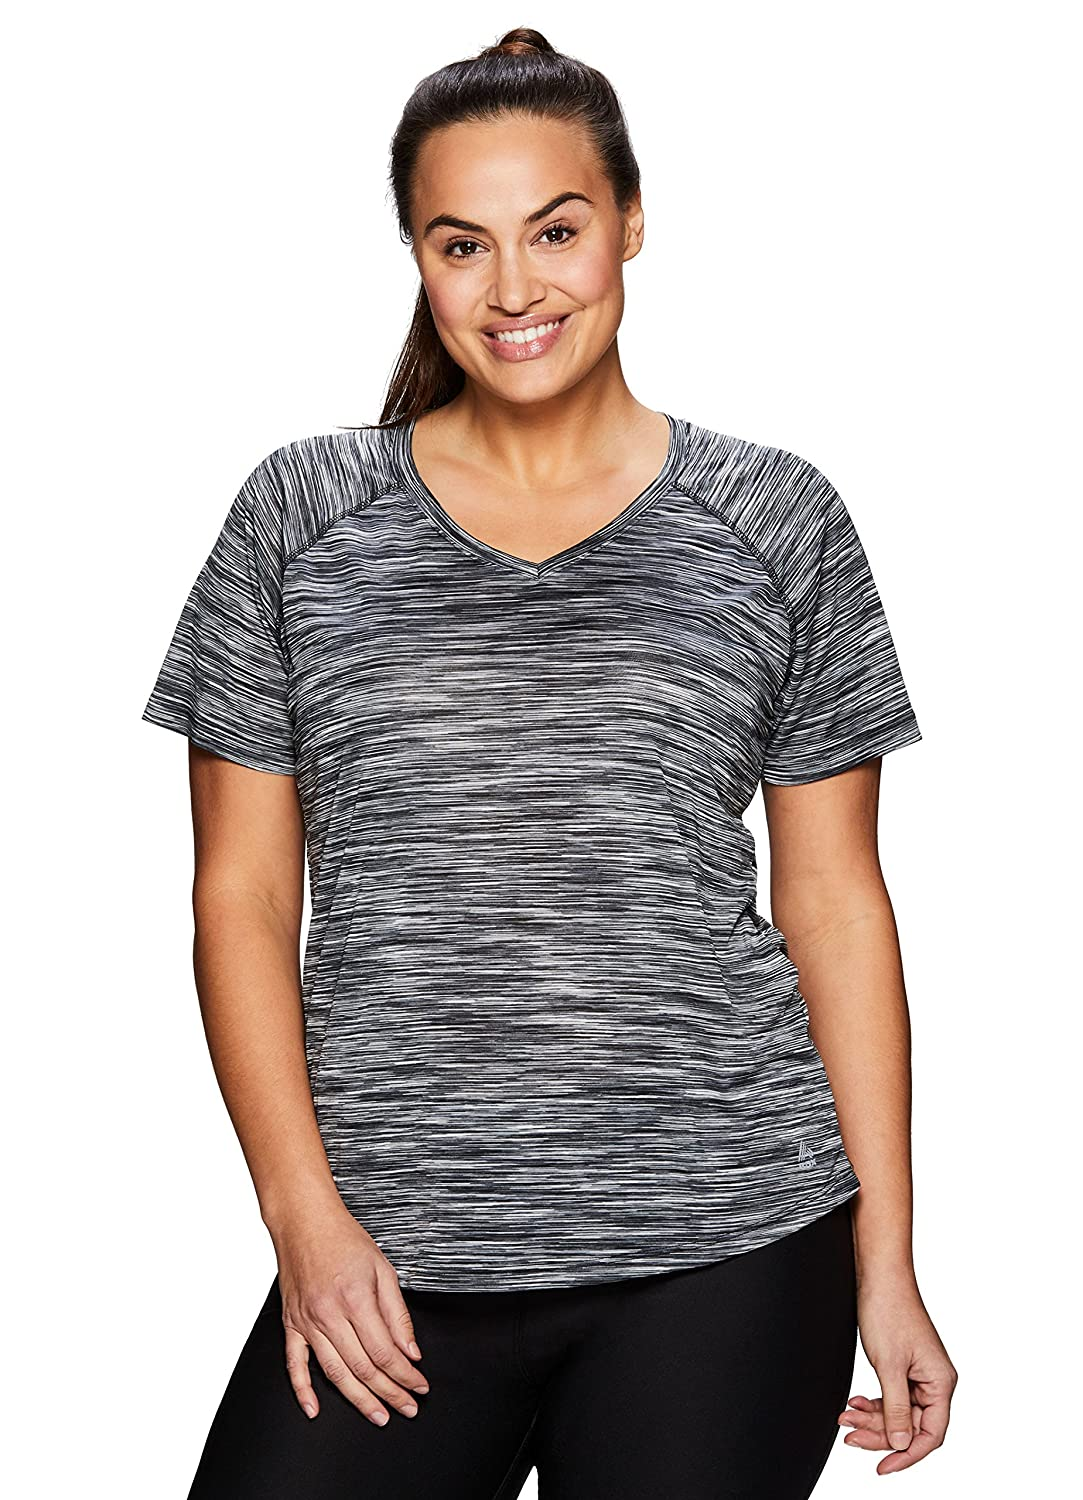 344caa38 Step up your fitness routine in this heathered space dye short sleeve v-neck  tee with side ruching. This tee features a v neckline for a feminine fit  and ...